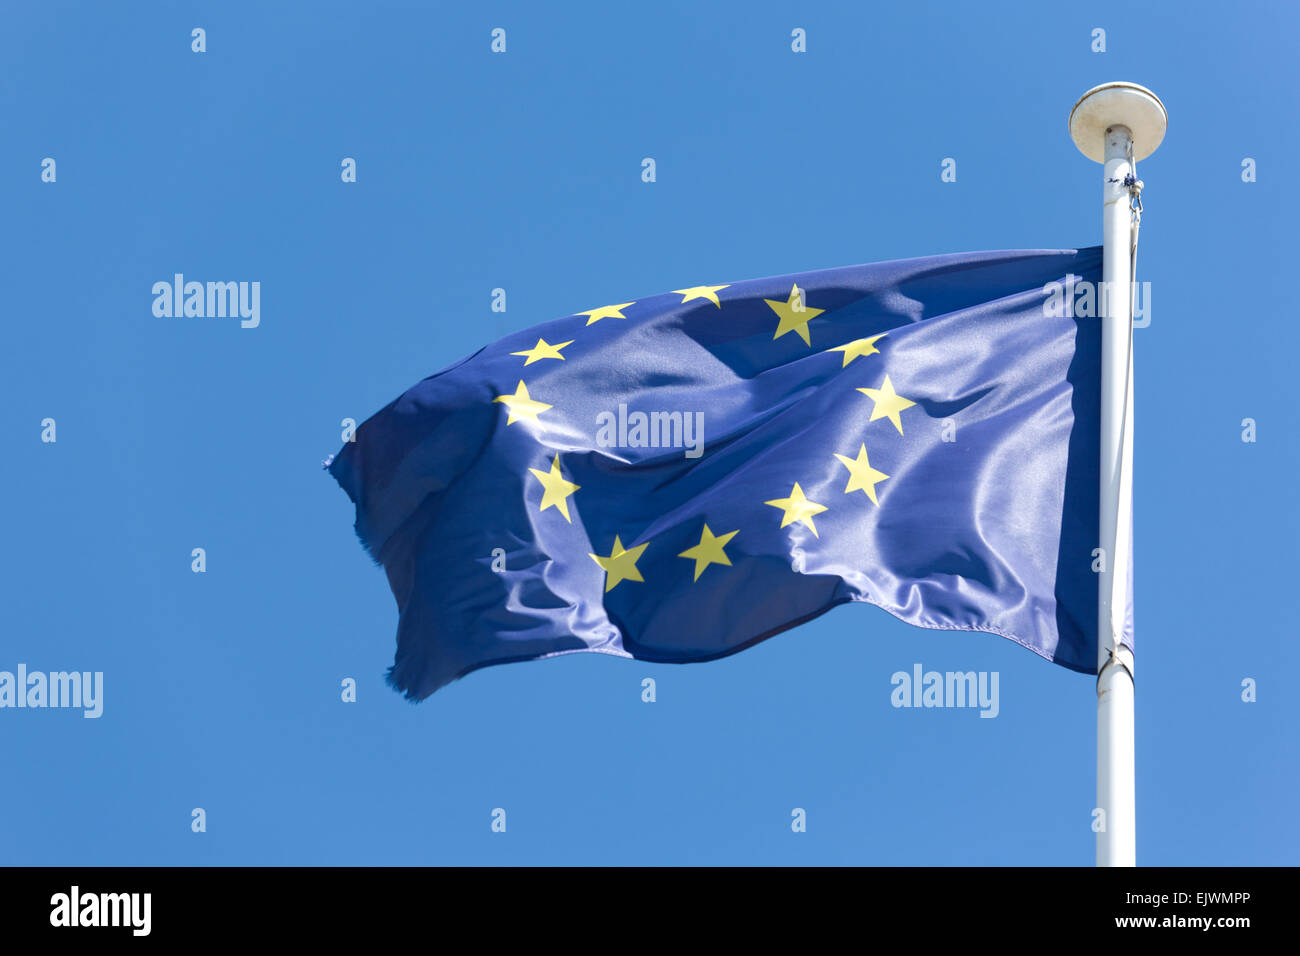 European Union flag fluttering in a brisk breeze against a blue sky - Stock Image